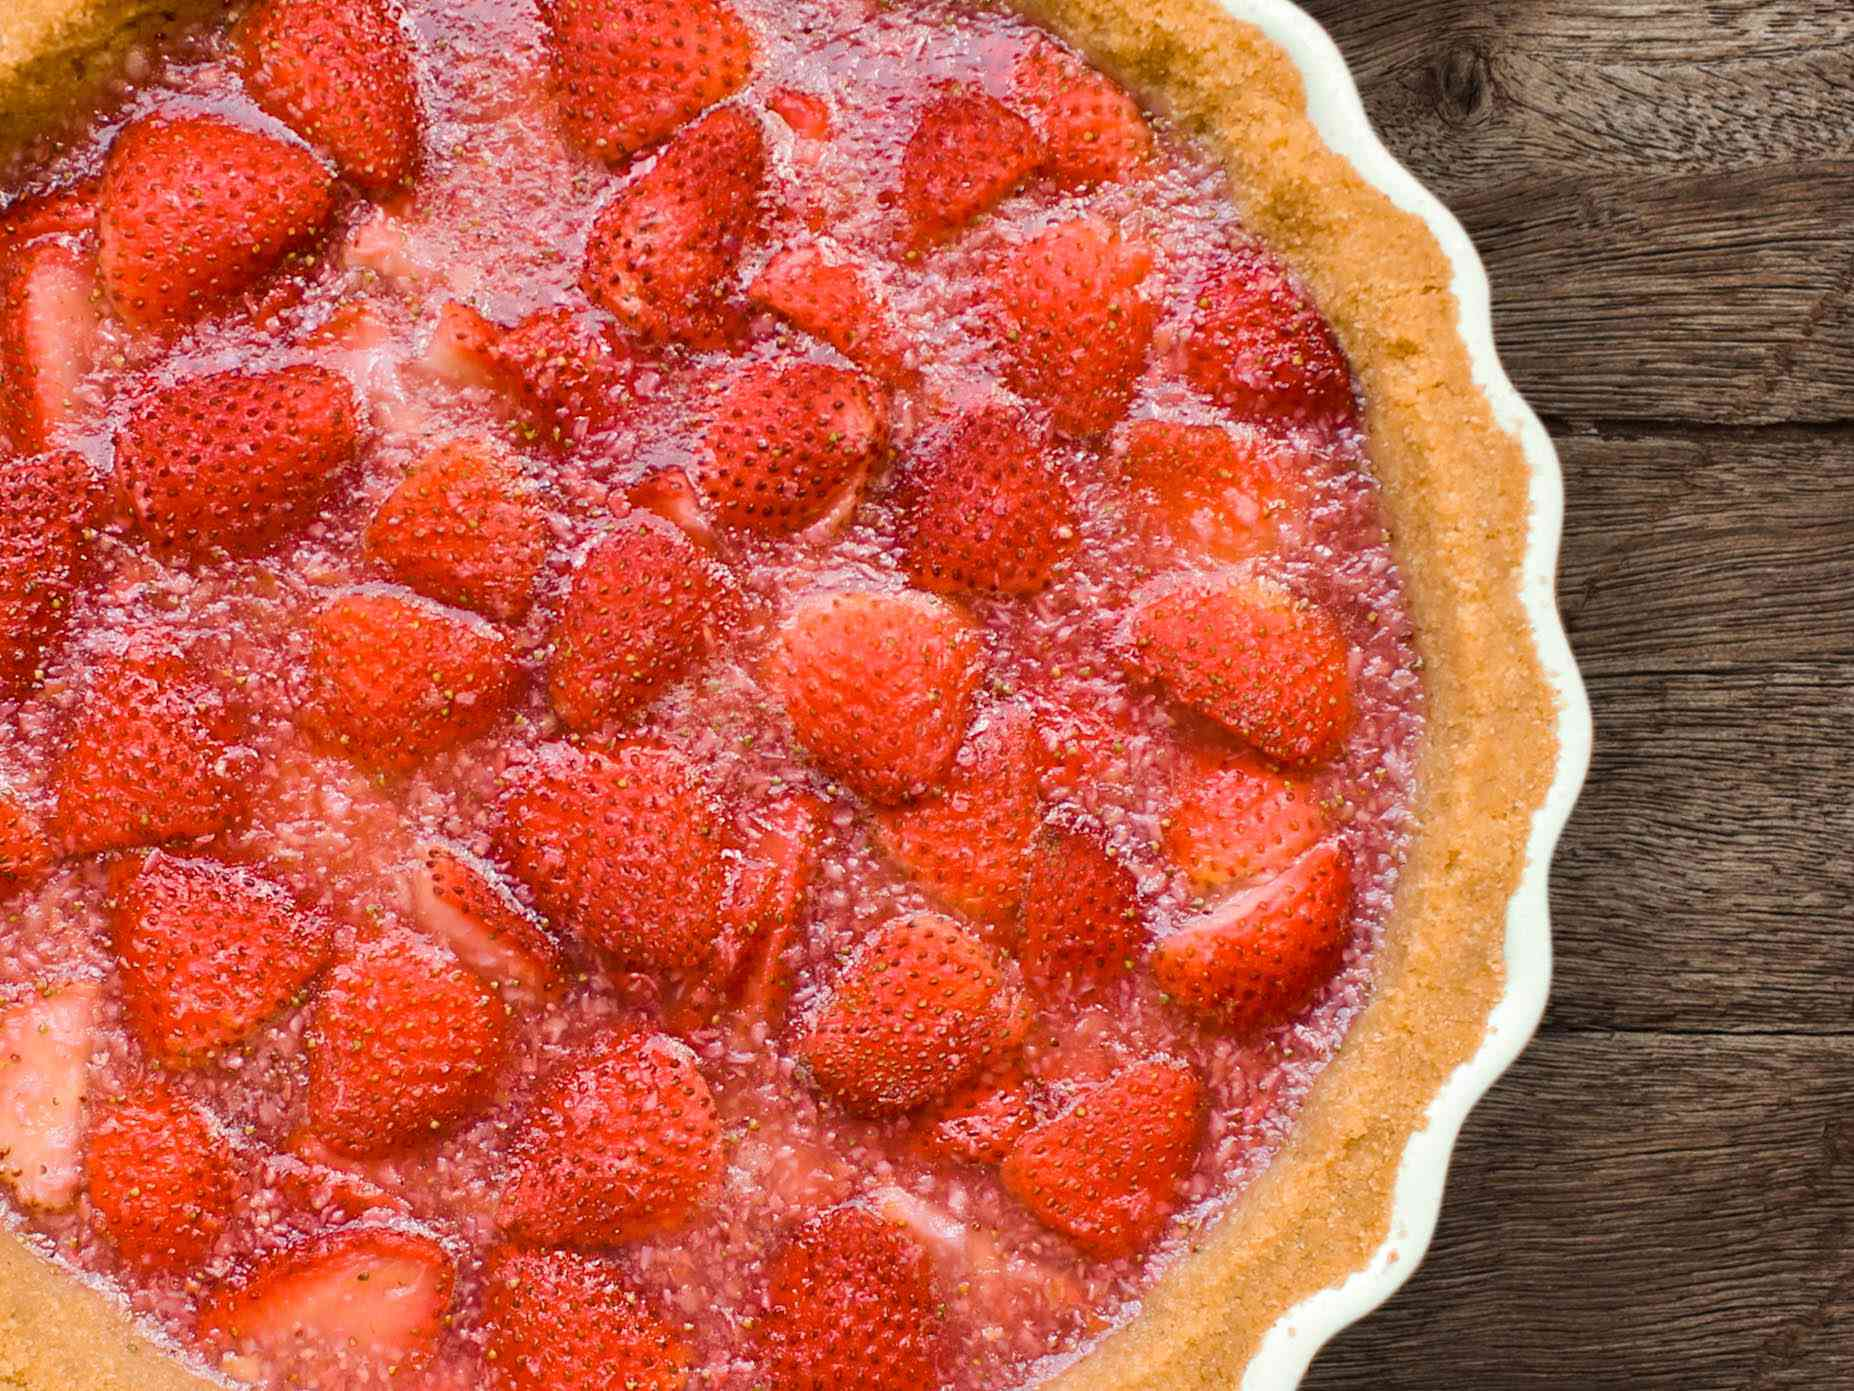 20150625-Summer-Strawberry-Pie-beauty-1-Yvonne-Ruperti2.jpg